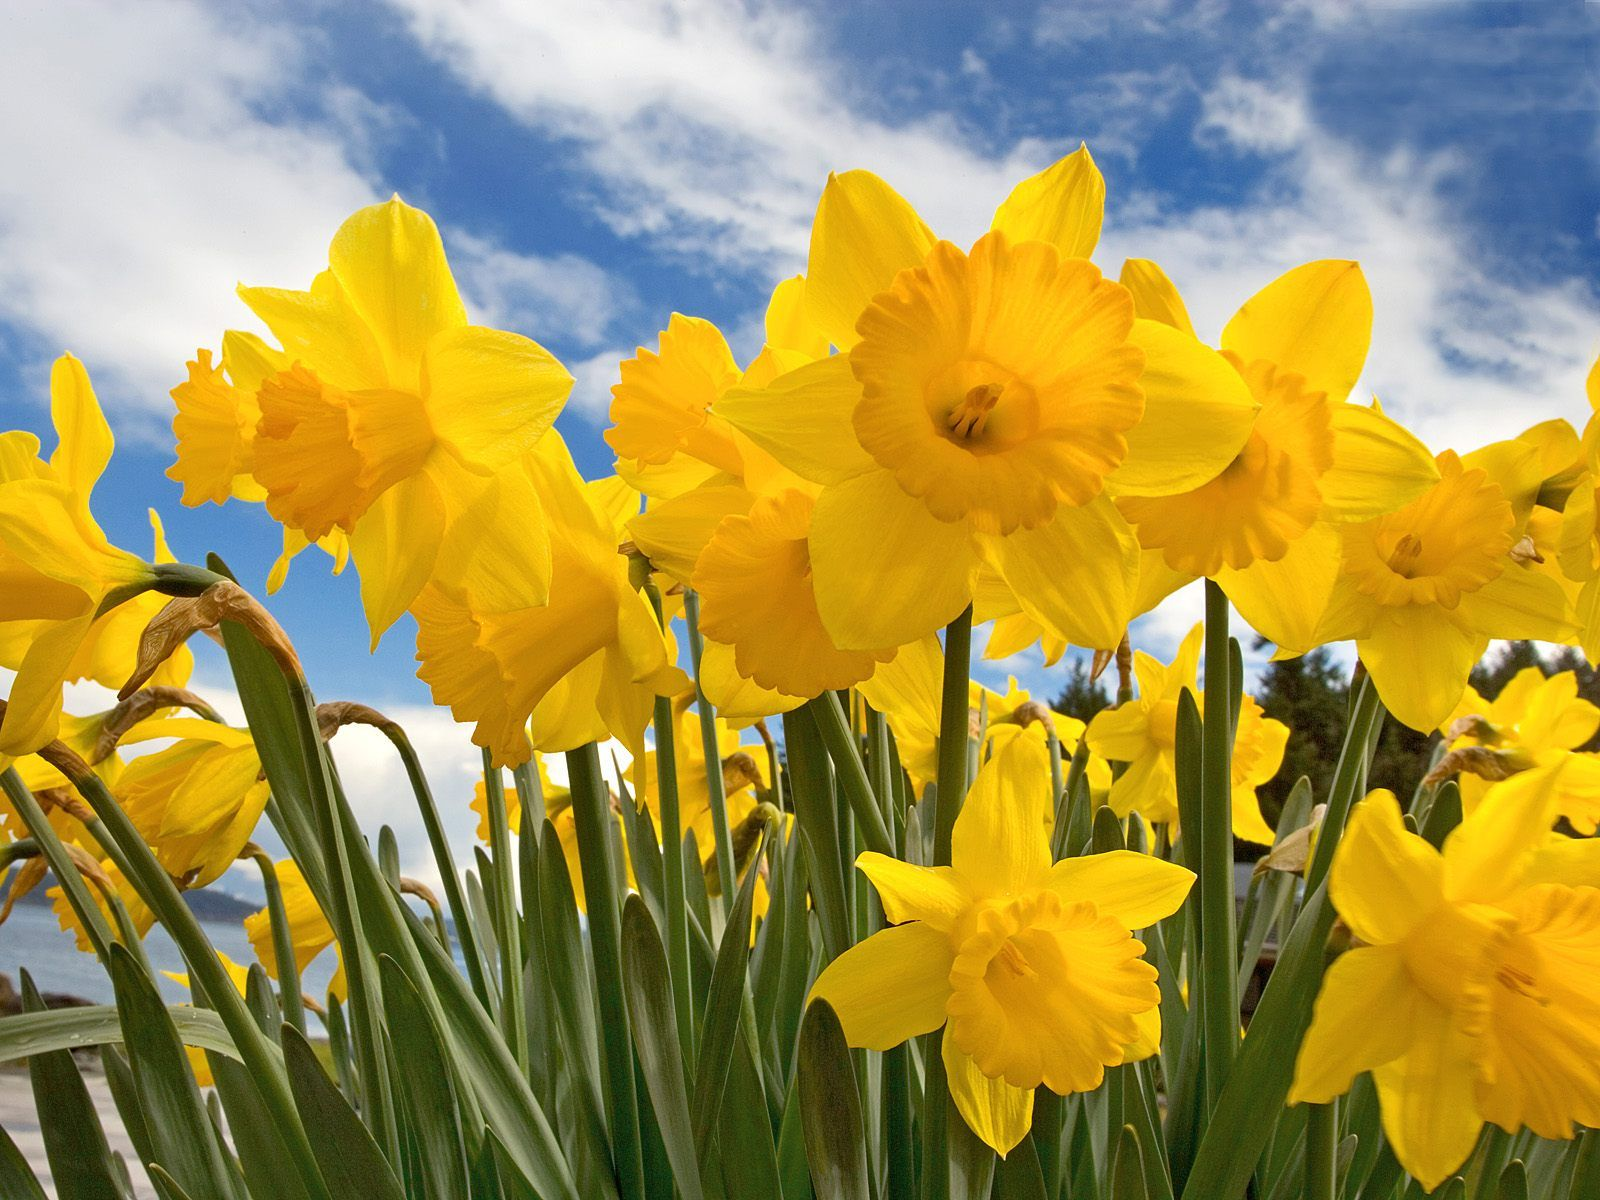 Pictures Uploaded By Fanpop Users For Flowers Picture Contest Daffodils Daffodil Flower Bulb Flowers